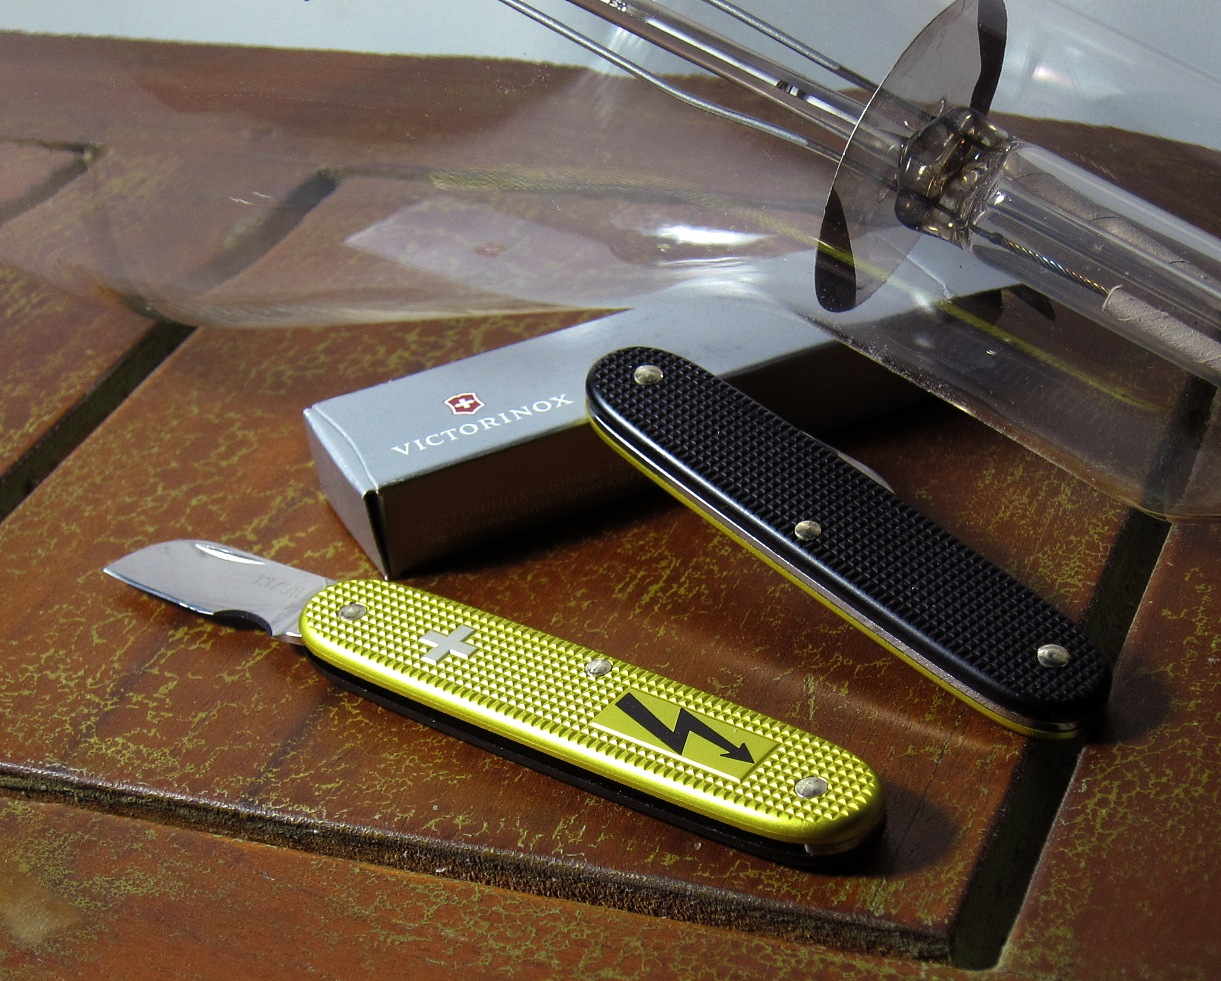 Show Image Php Id Scalesize Nocount Sakwiki Victorinox Electrician Solo Yellow Chartreuse Black